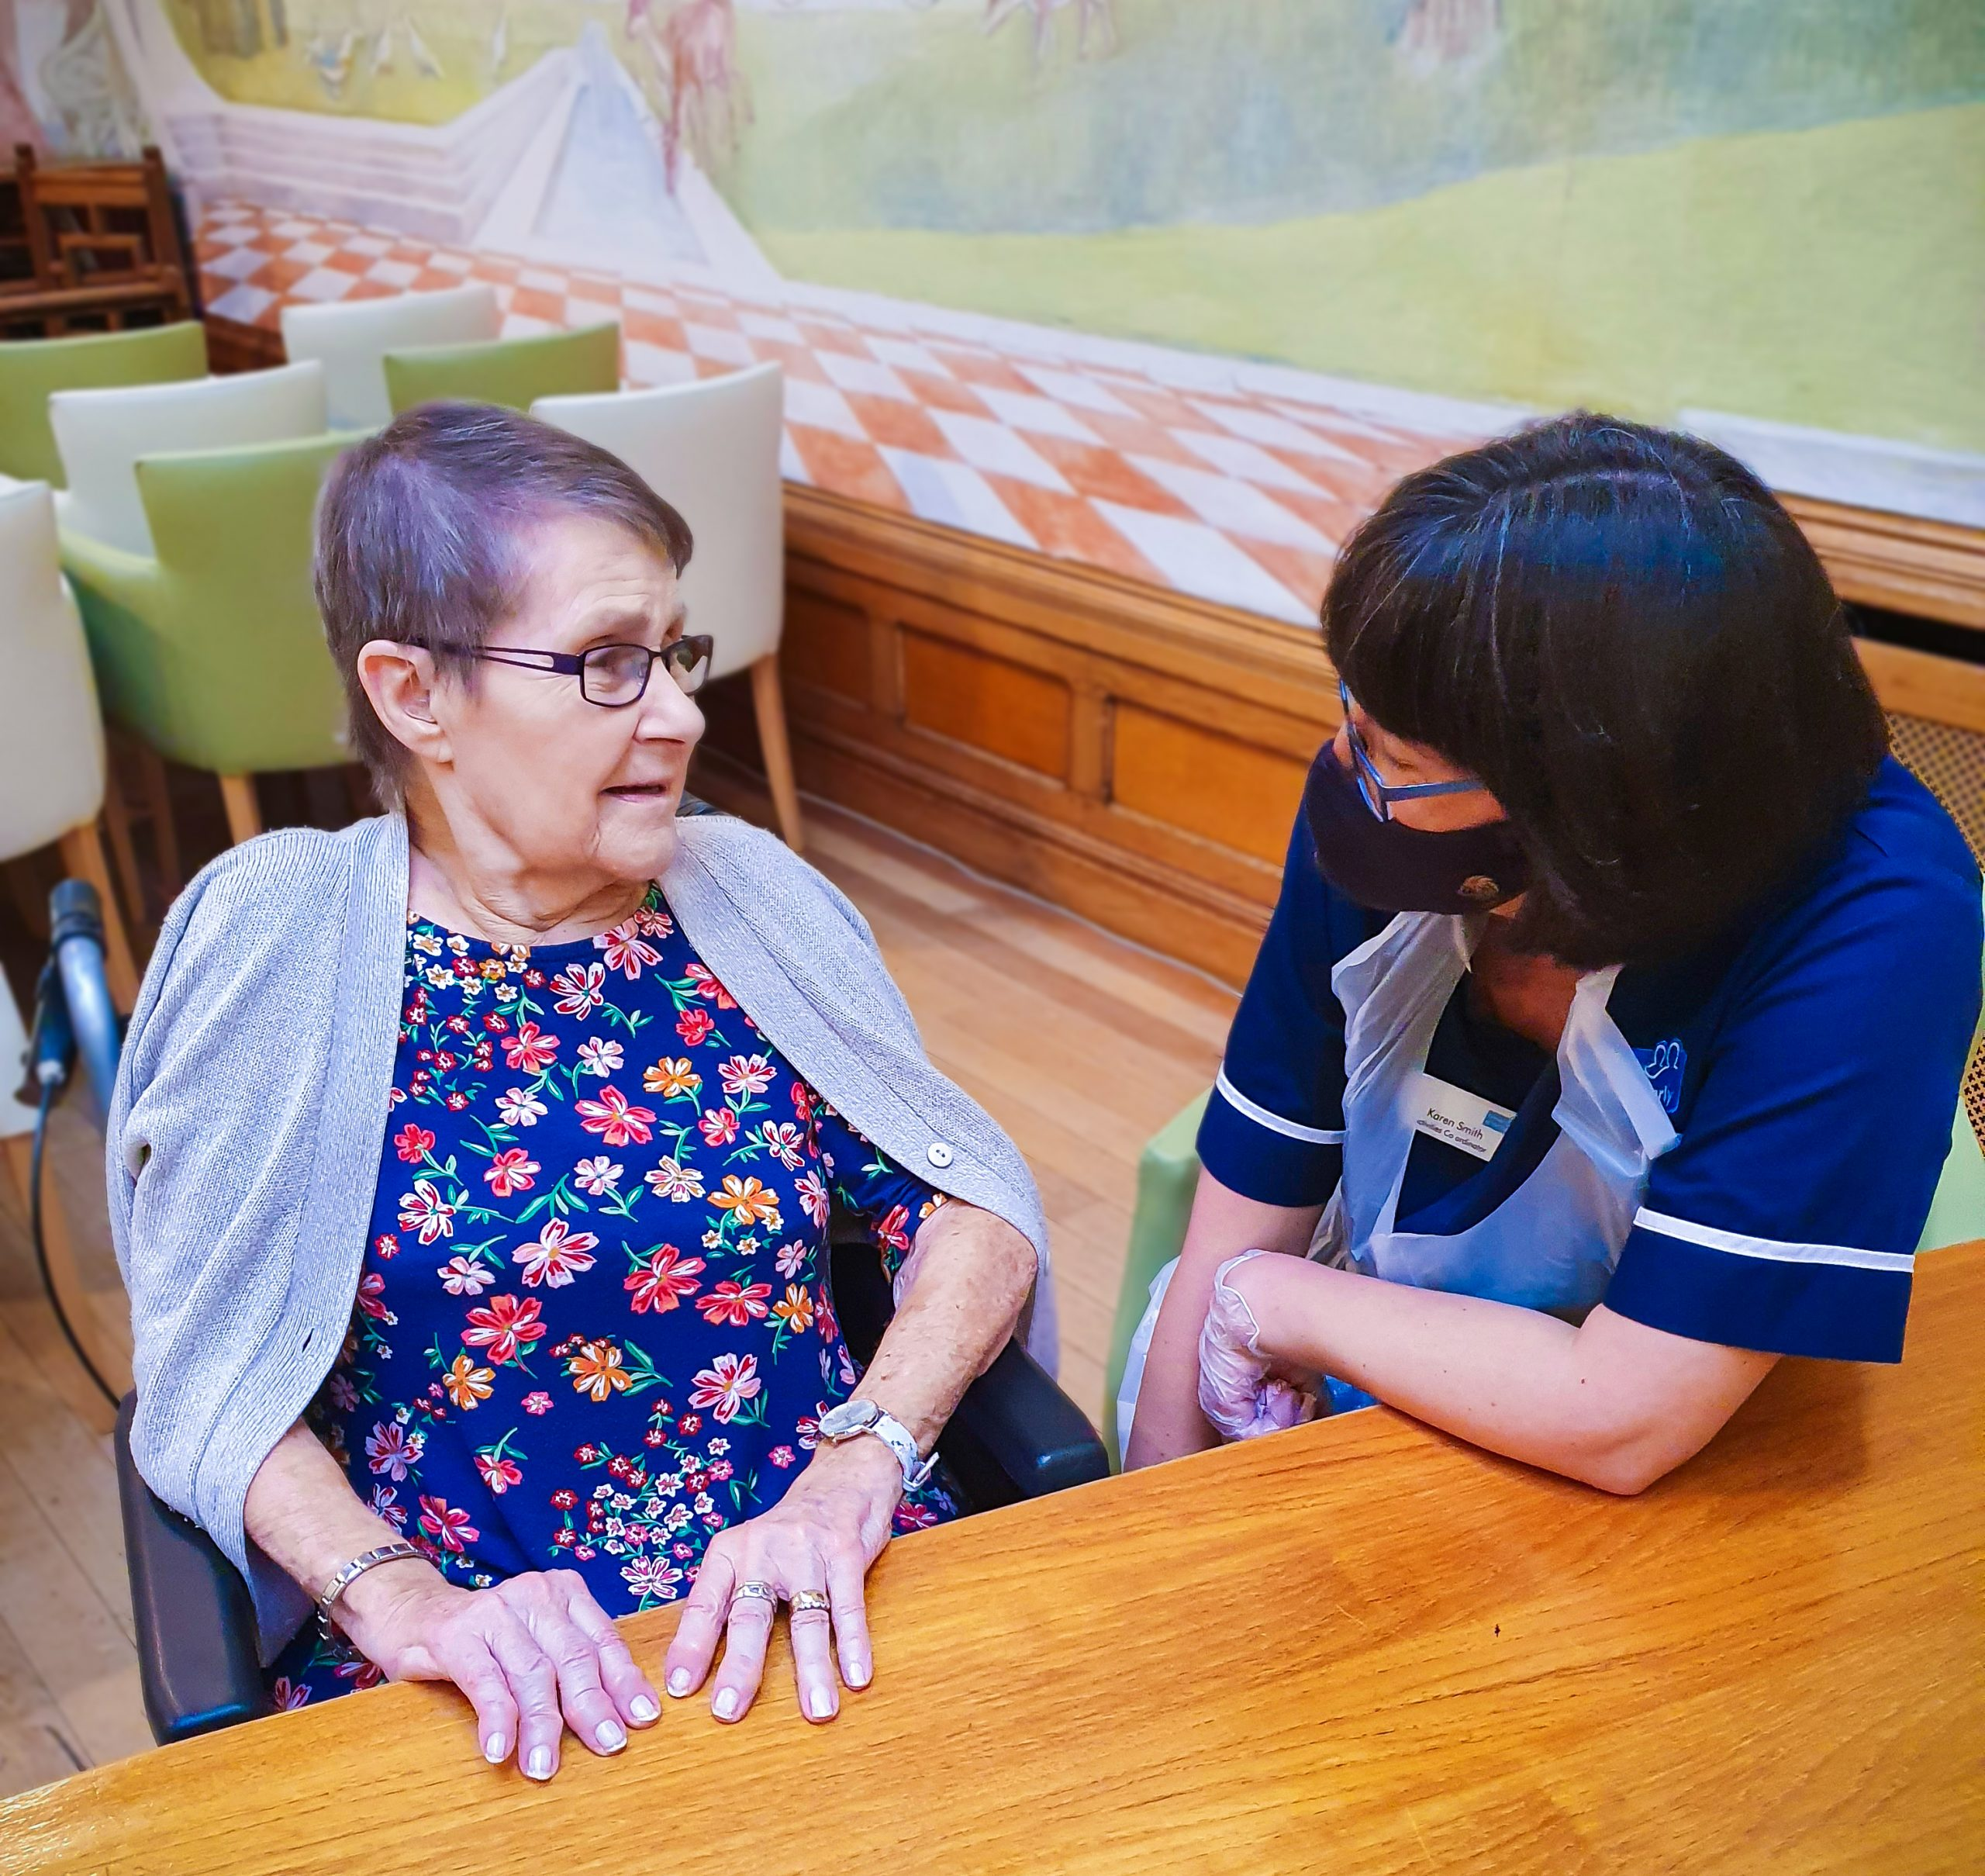 Malvern care home's activity coordinator talking to a resident